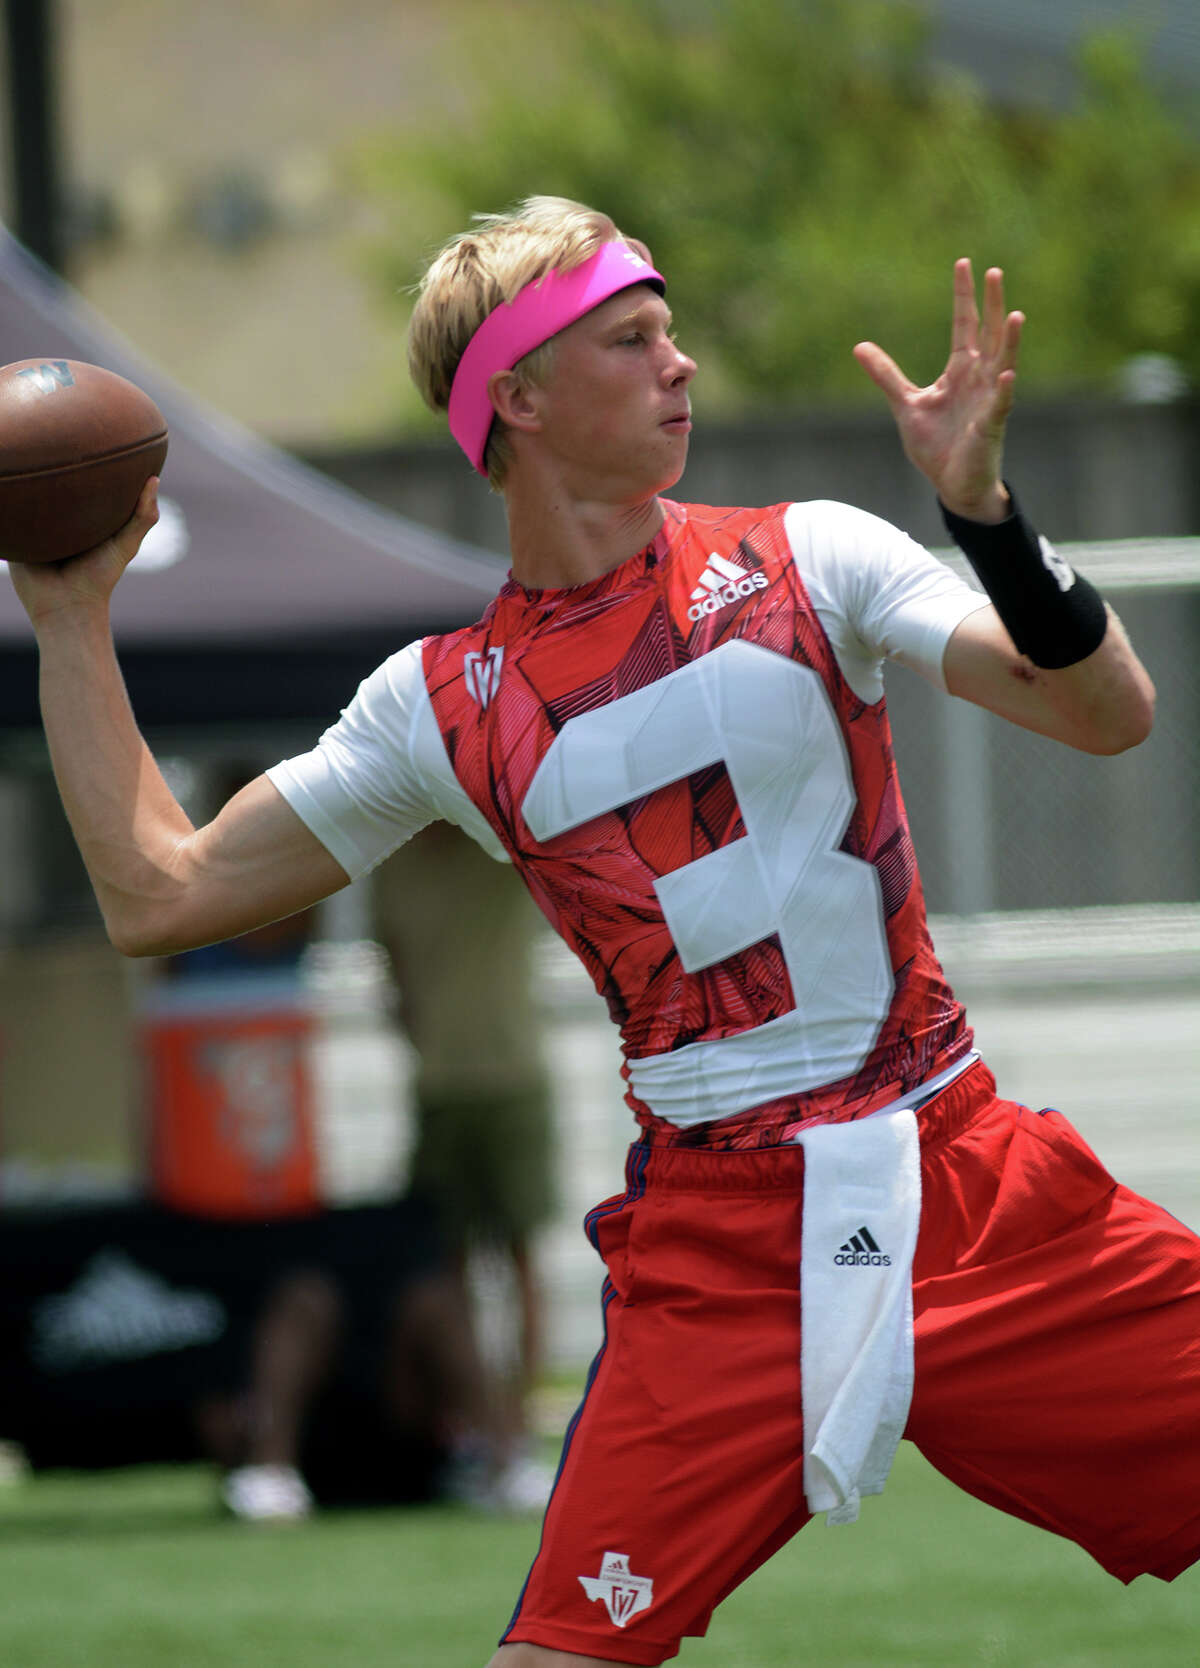 The Woodlands quarterback Eric Schmid targets a receiver against College Station during their Division I quarterfinals matchup at the 2016 Texas 7on7 Championships at Veterans Park and Athletic Complex in College Station on Saturday, July 9, 2016. (Photo by Jerry Baker/Freelance)